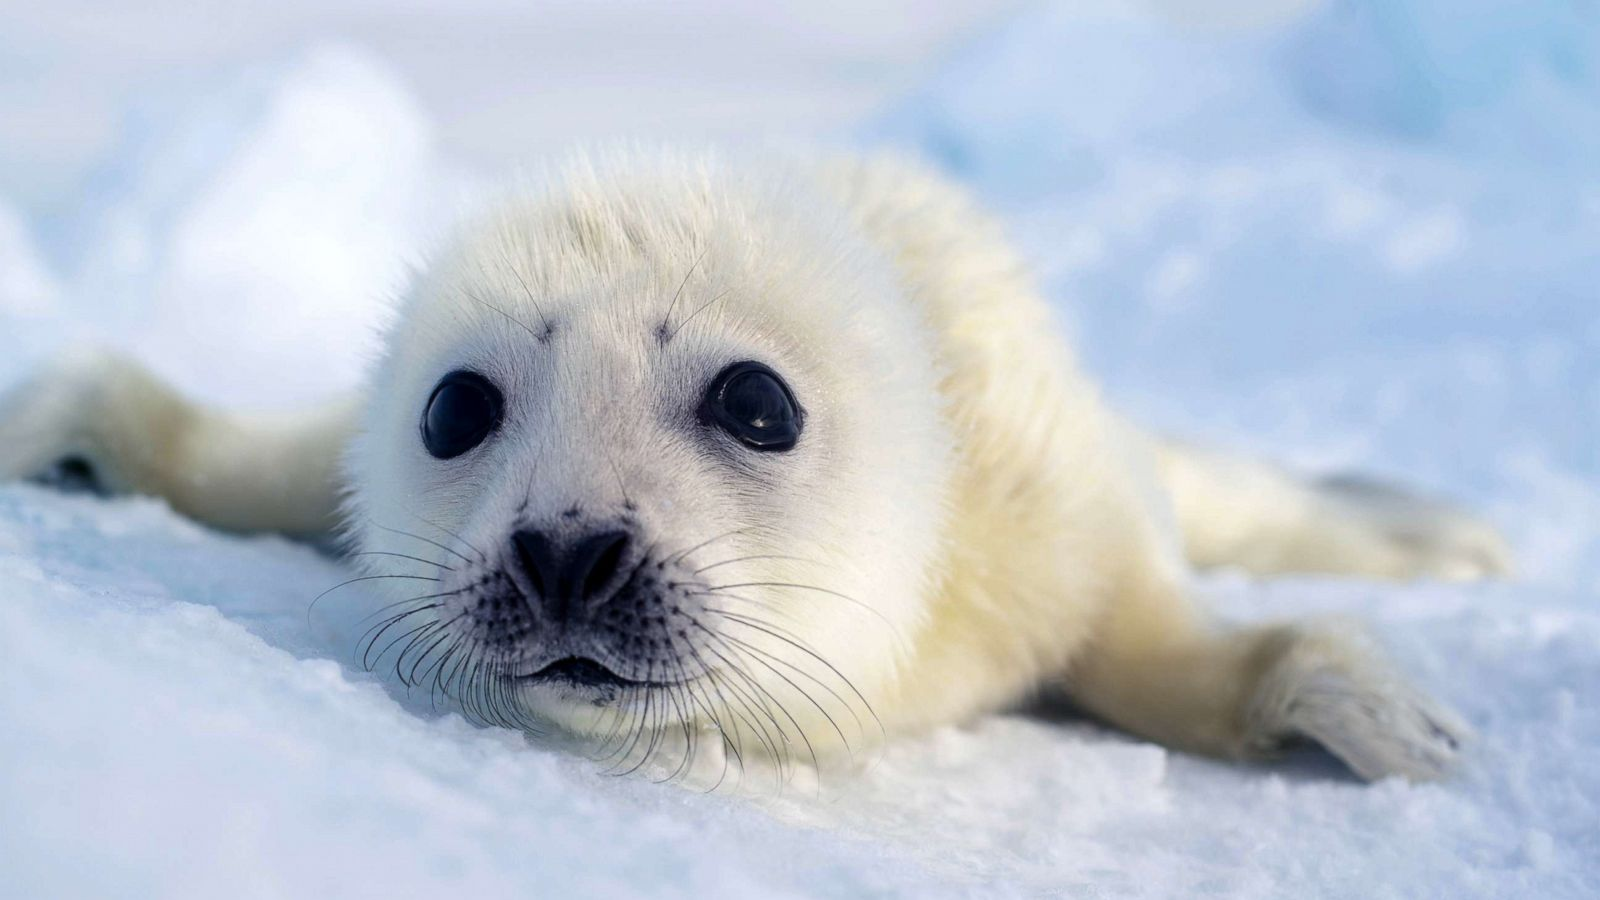 baby-seal-01-abc-jef-200310_hpMain_16x9t_1600